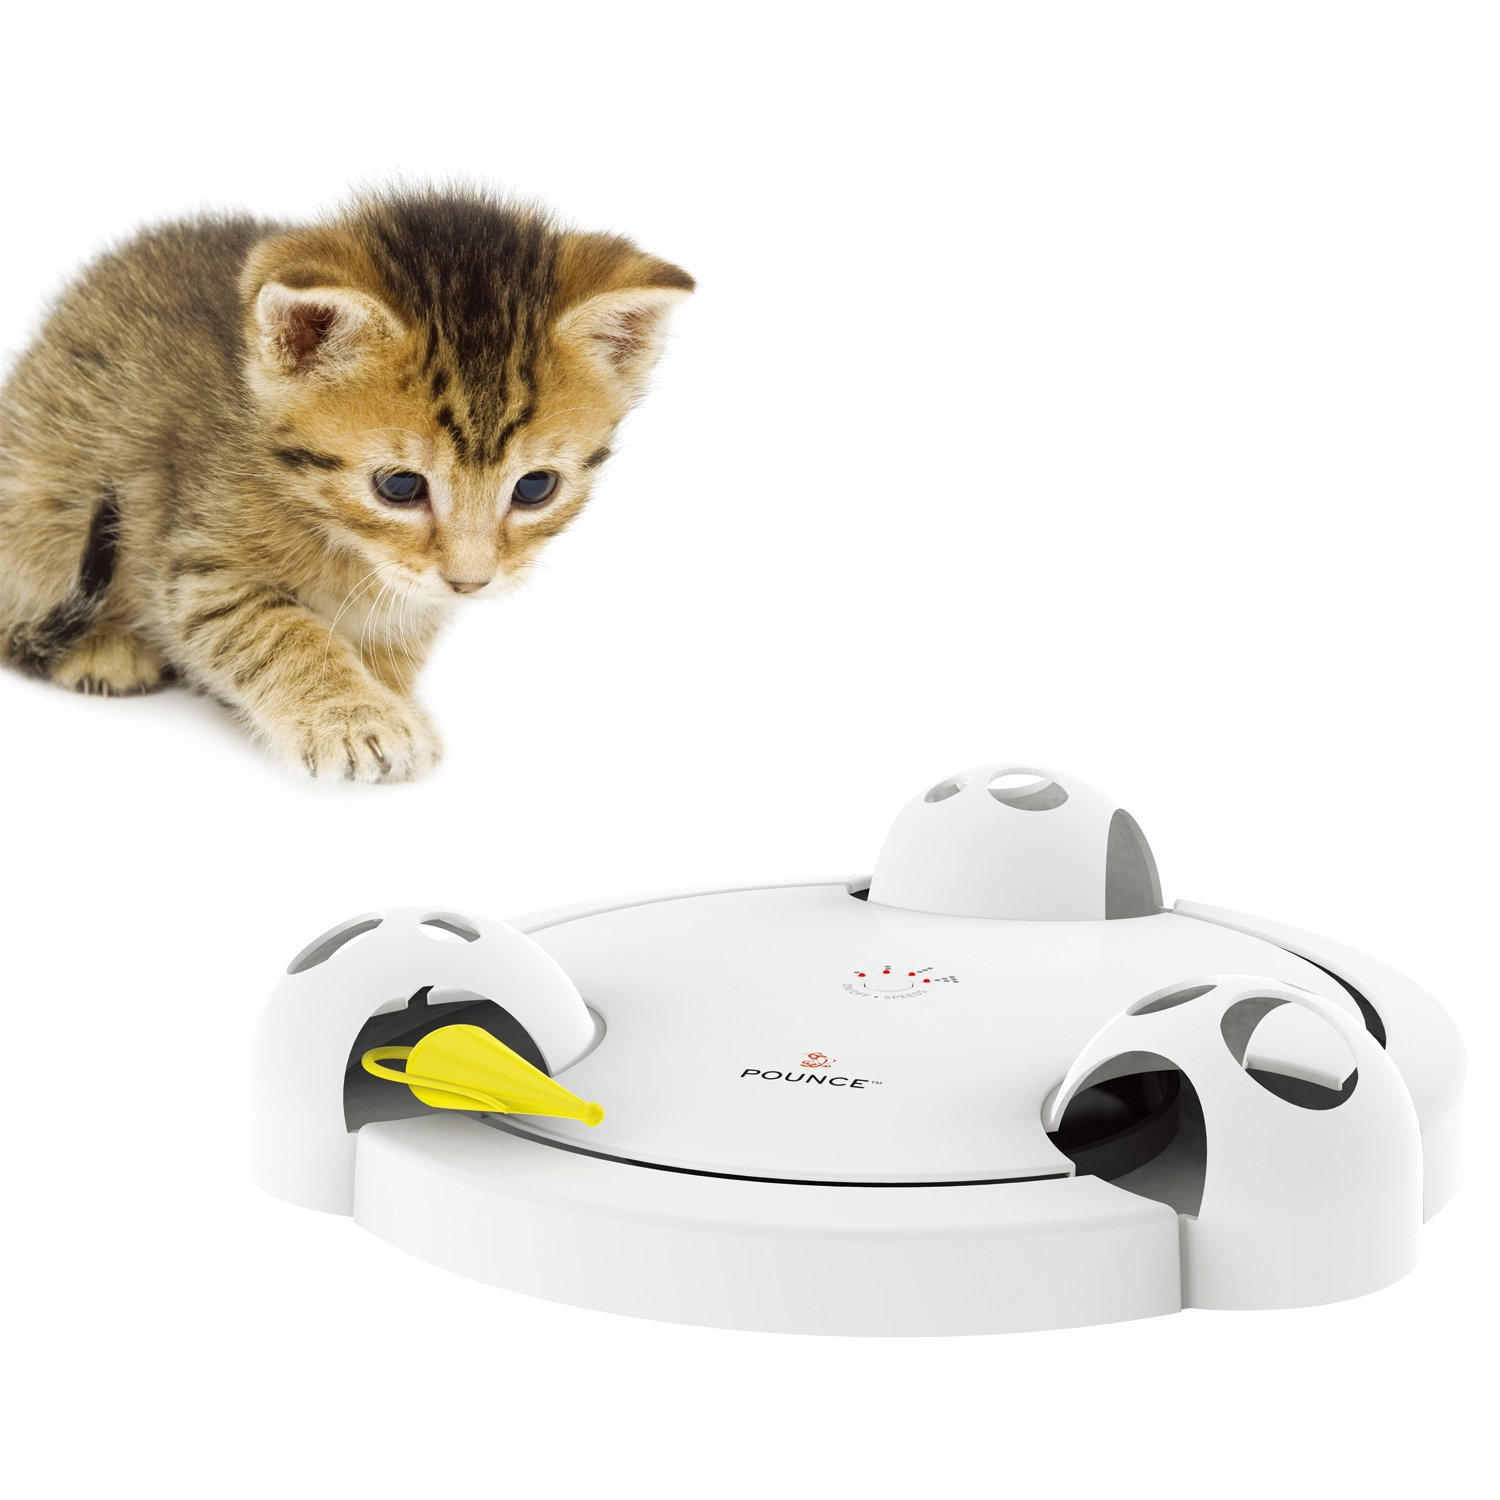 PetSafe Pounce Cat Toy, Interactive Automatic Toy for Cat or Kitten, Adjustable Electronic Battery Operated Toy by PetSafe (Image #4)